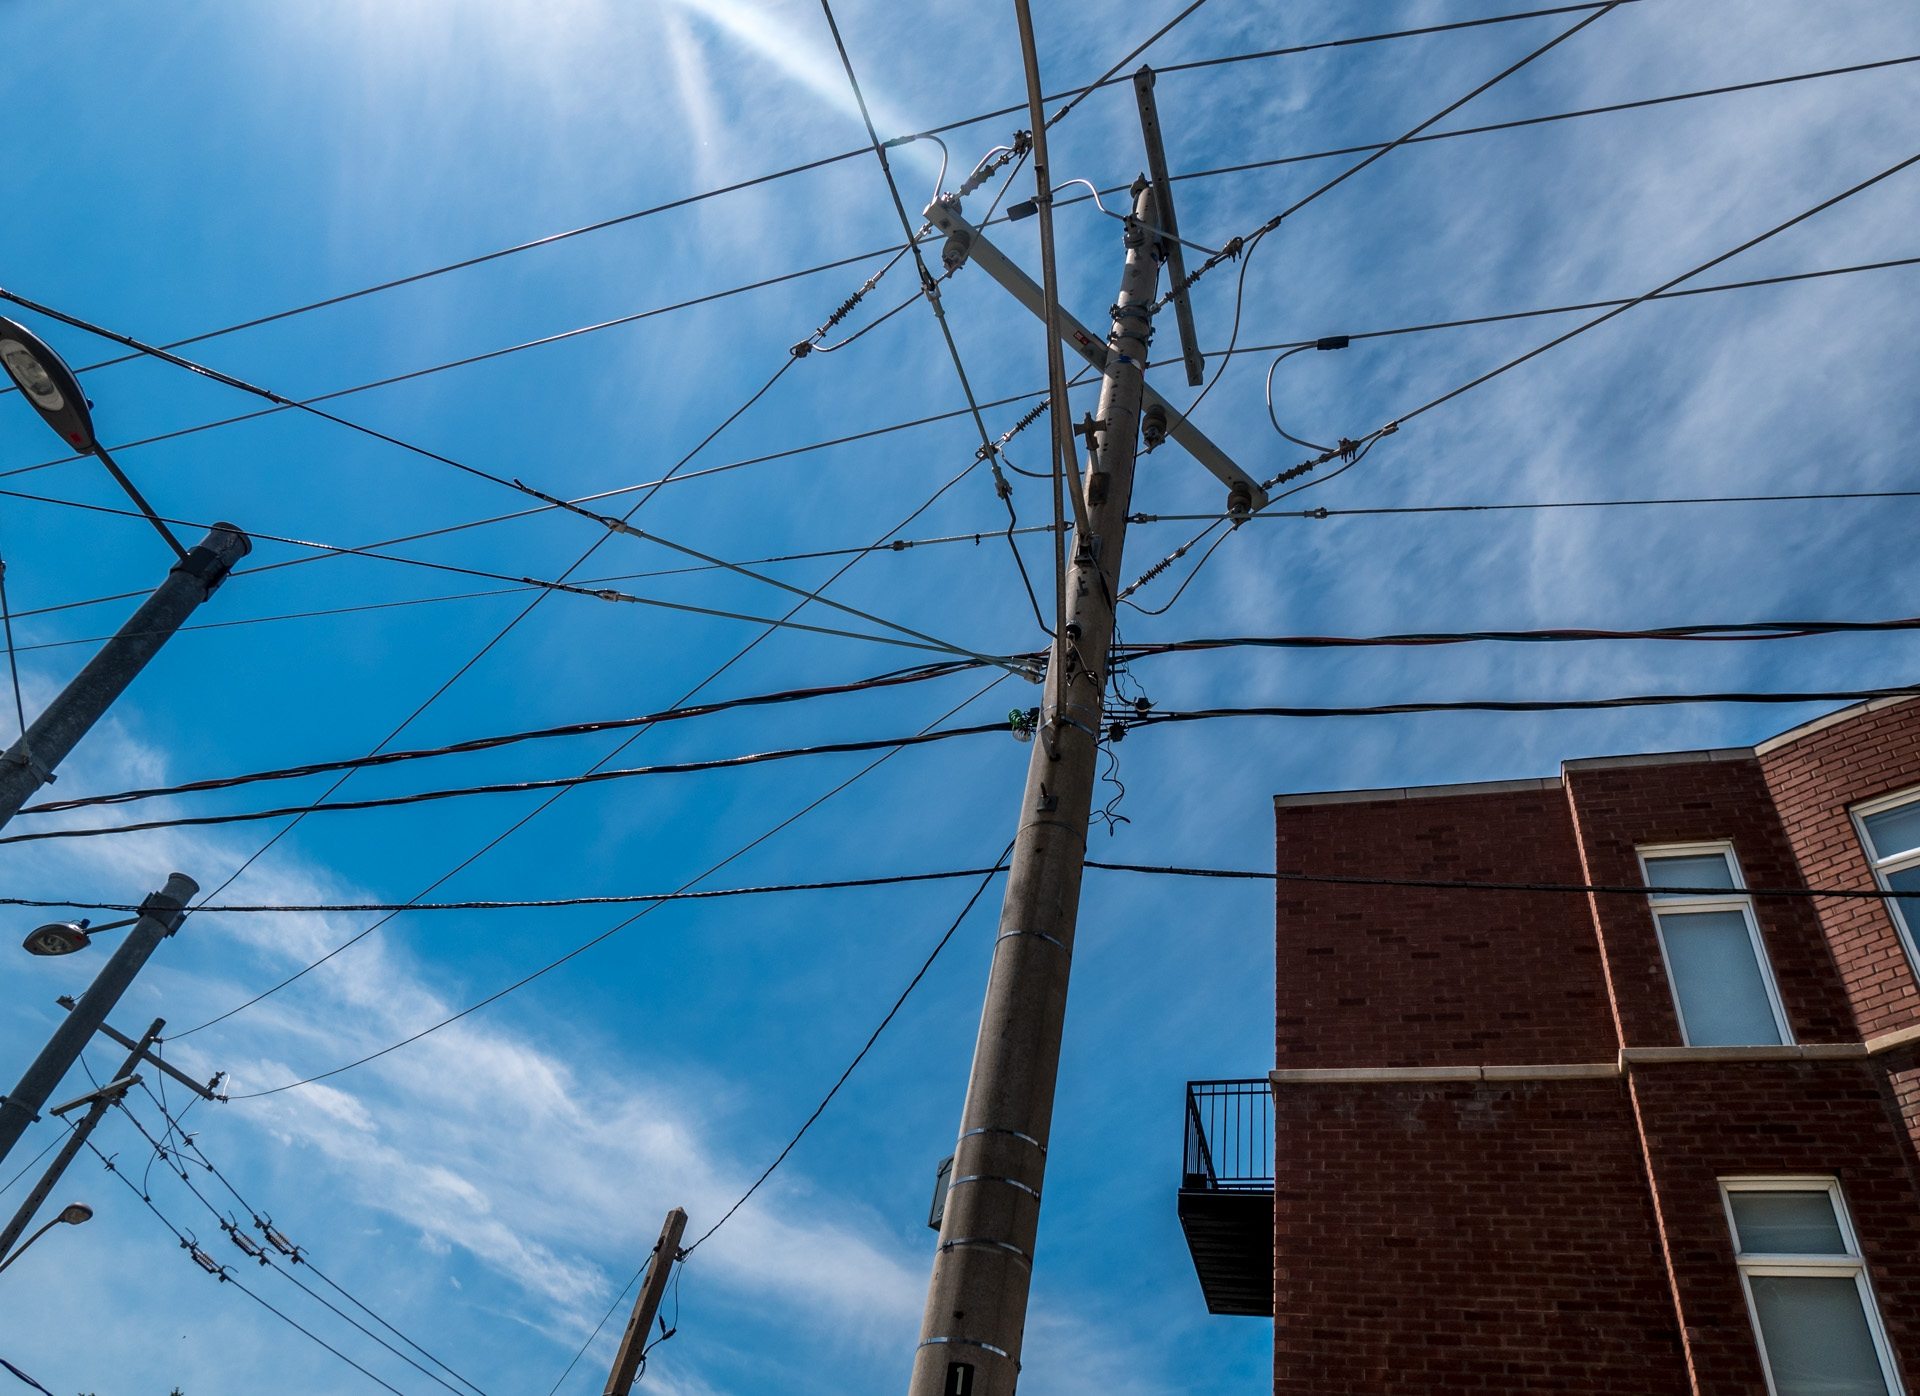 Photo of the Week - 21st August 2016 - A Tangle of Streetcar Wires ...